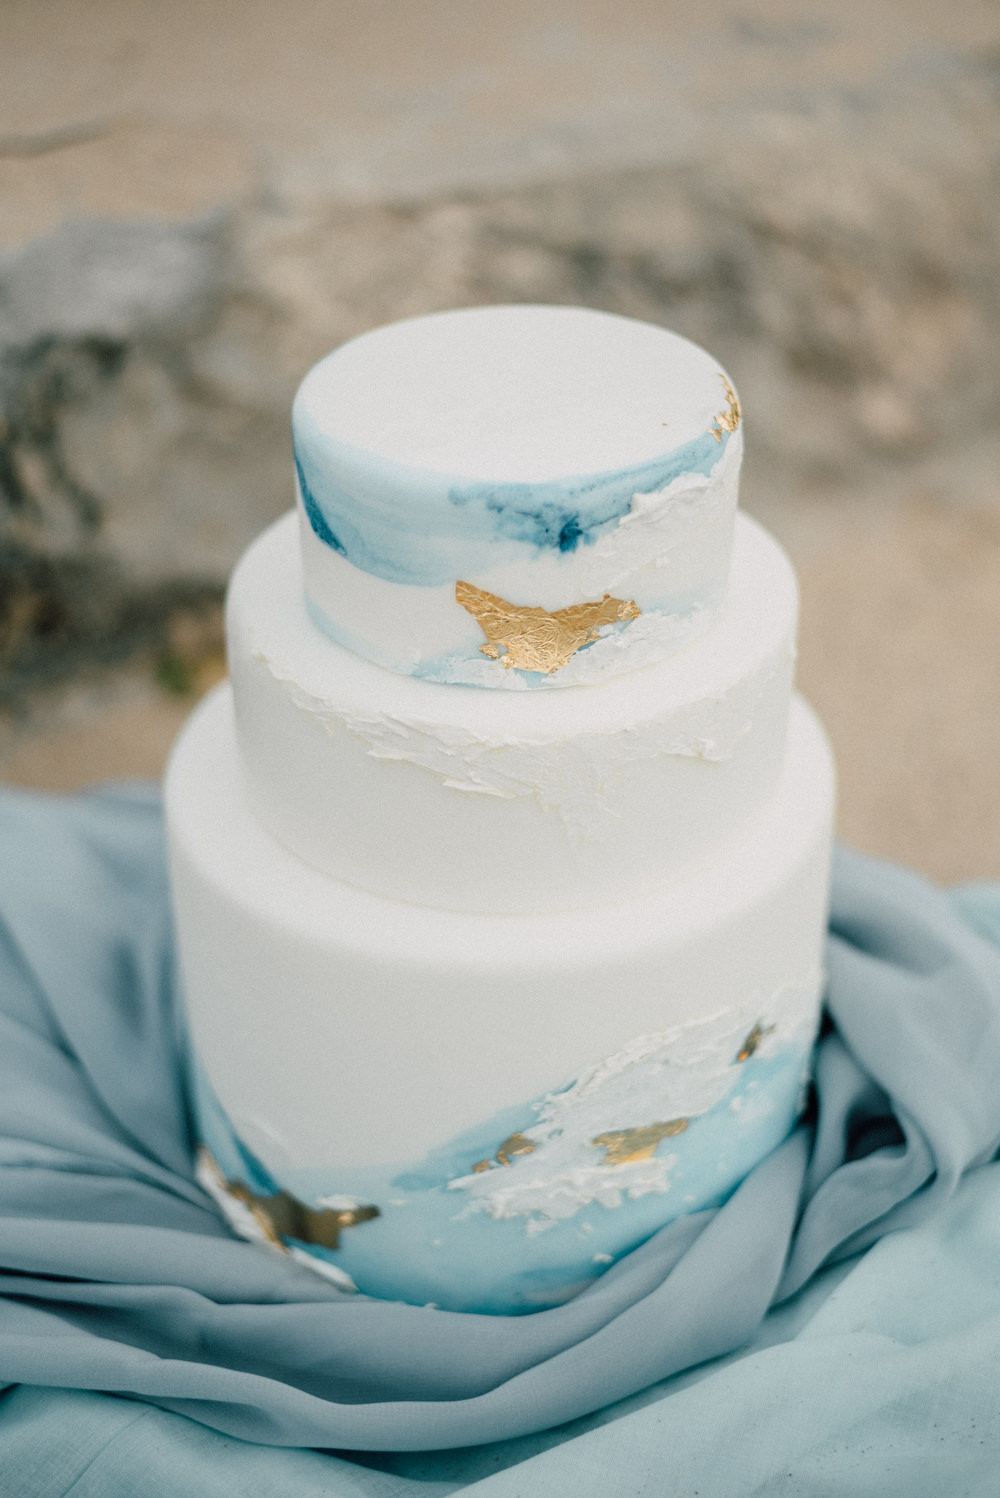 Outdoor Wild Nature Destination Spain Europe Beach Styled Shoot White Watercolor Brush Cake Gold Leaf   Blue Ibiza Elopement Ideas and Surprise Proposal Serena Genovese Photography